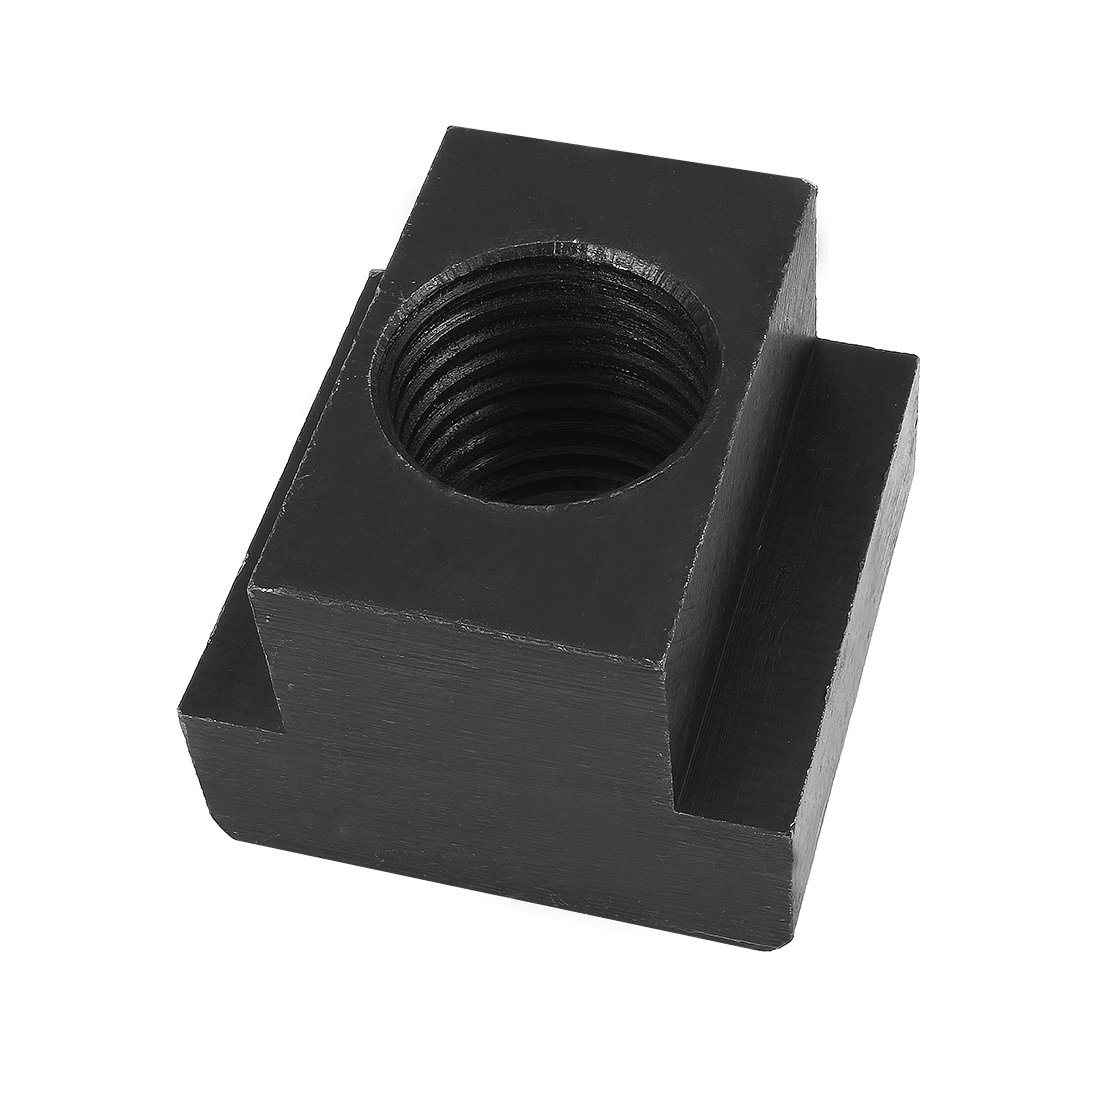 uxcell Steel T-Slot Nut Grade 10.9 Tapped Through M36 Thread 1-inch Slot Depth